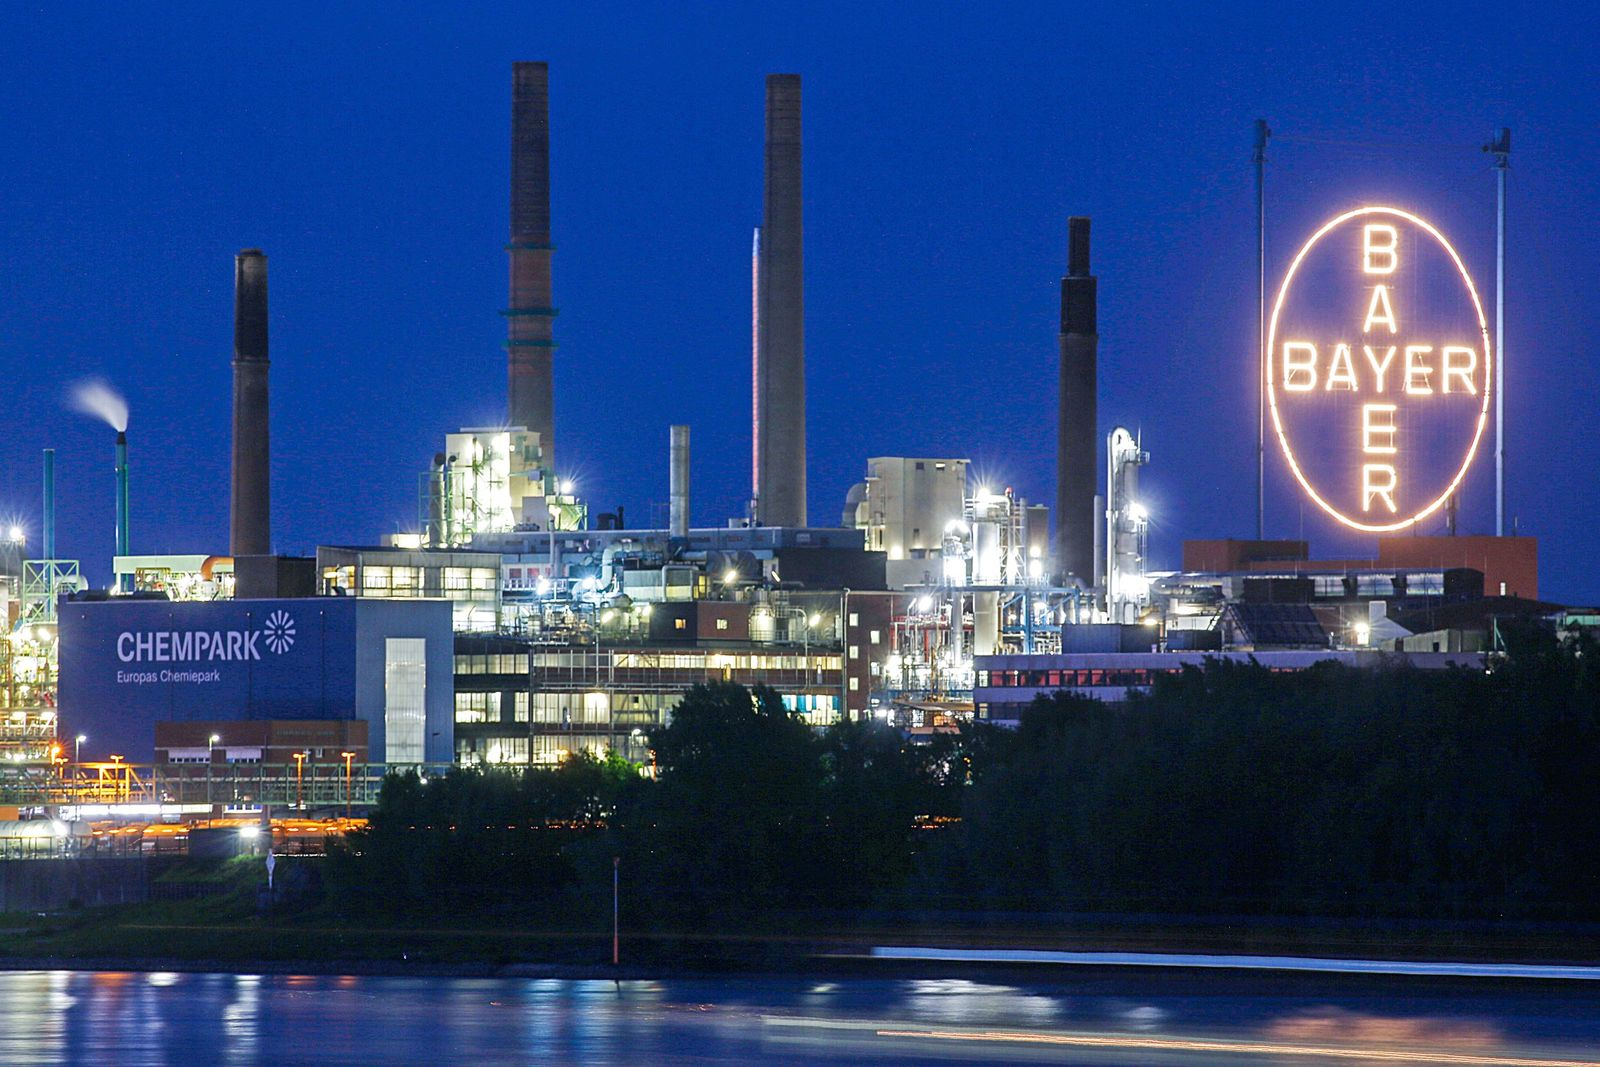 Bayer - Werk in Leverkusen